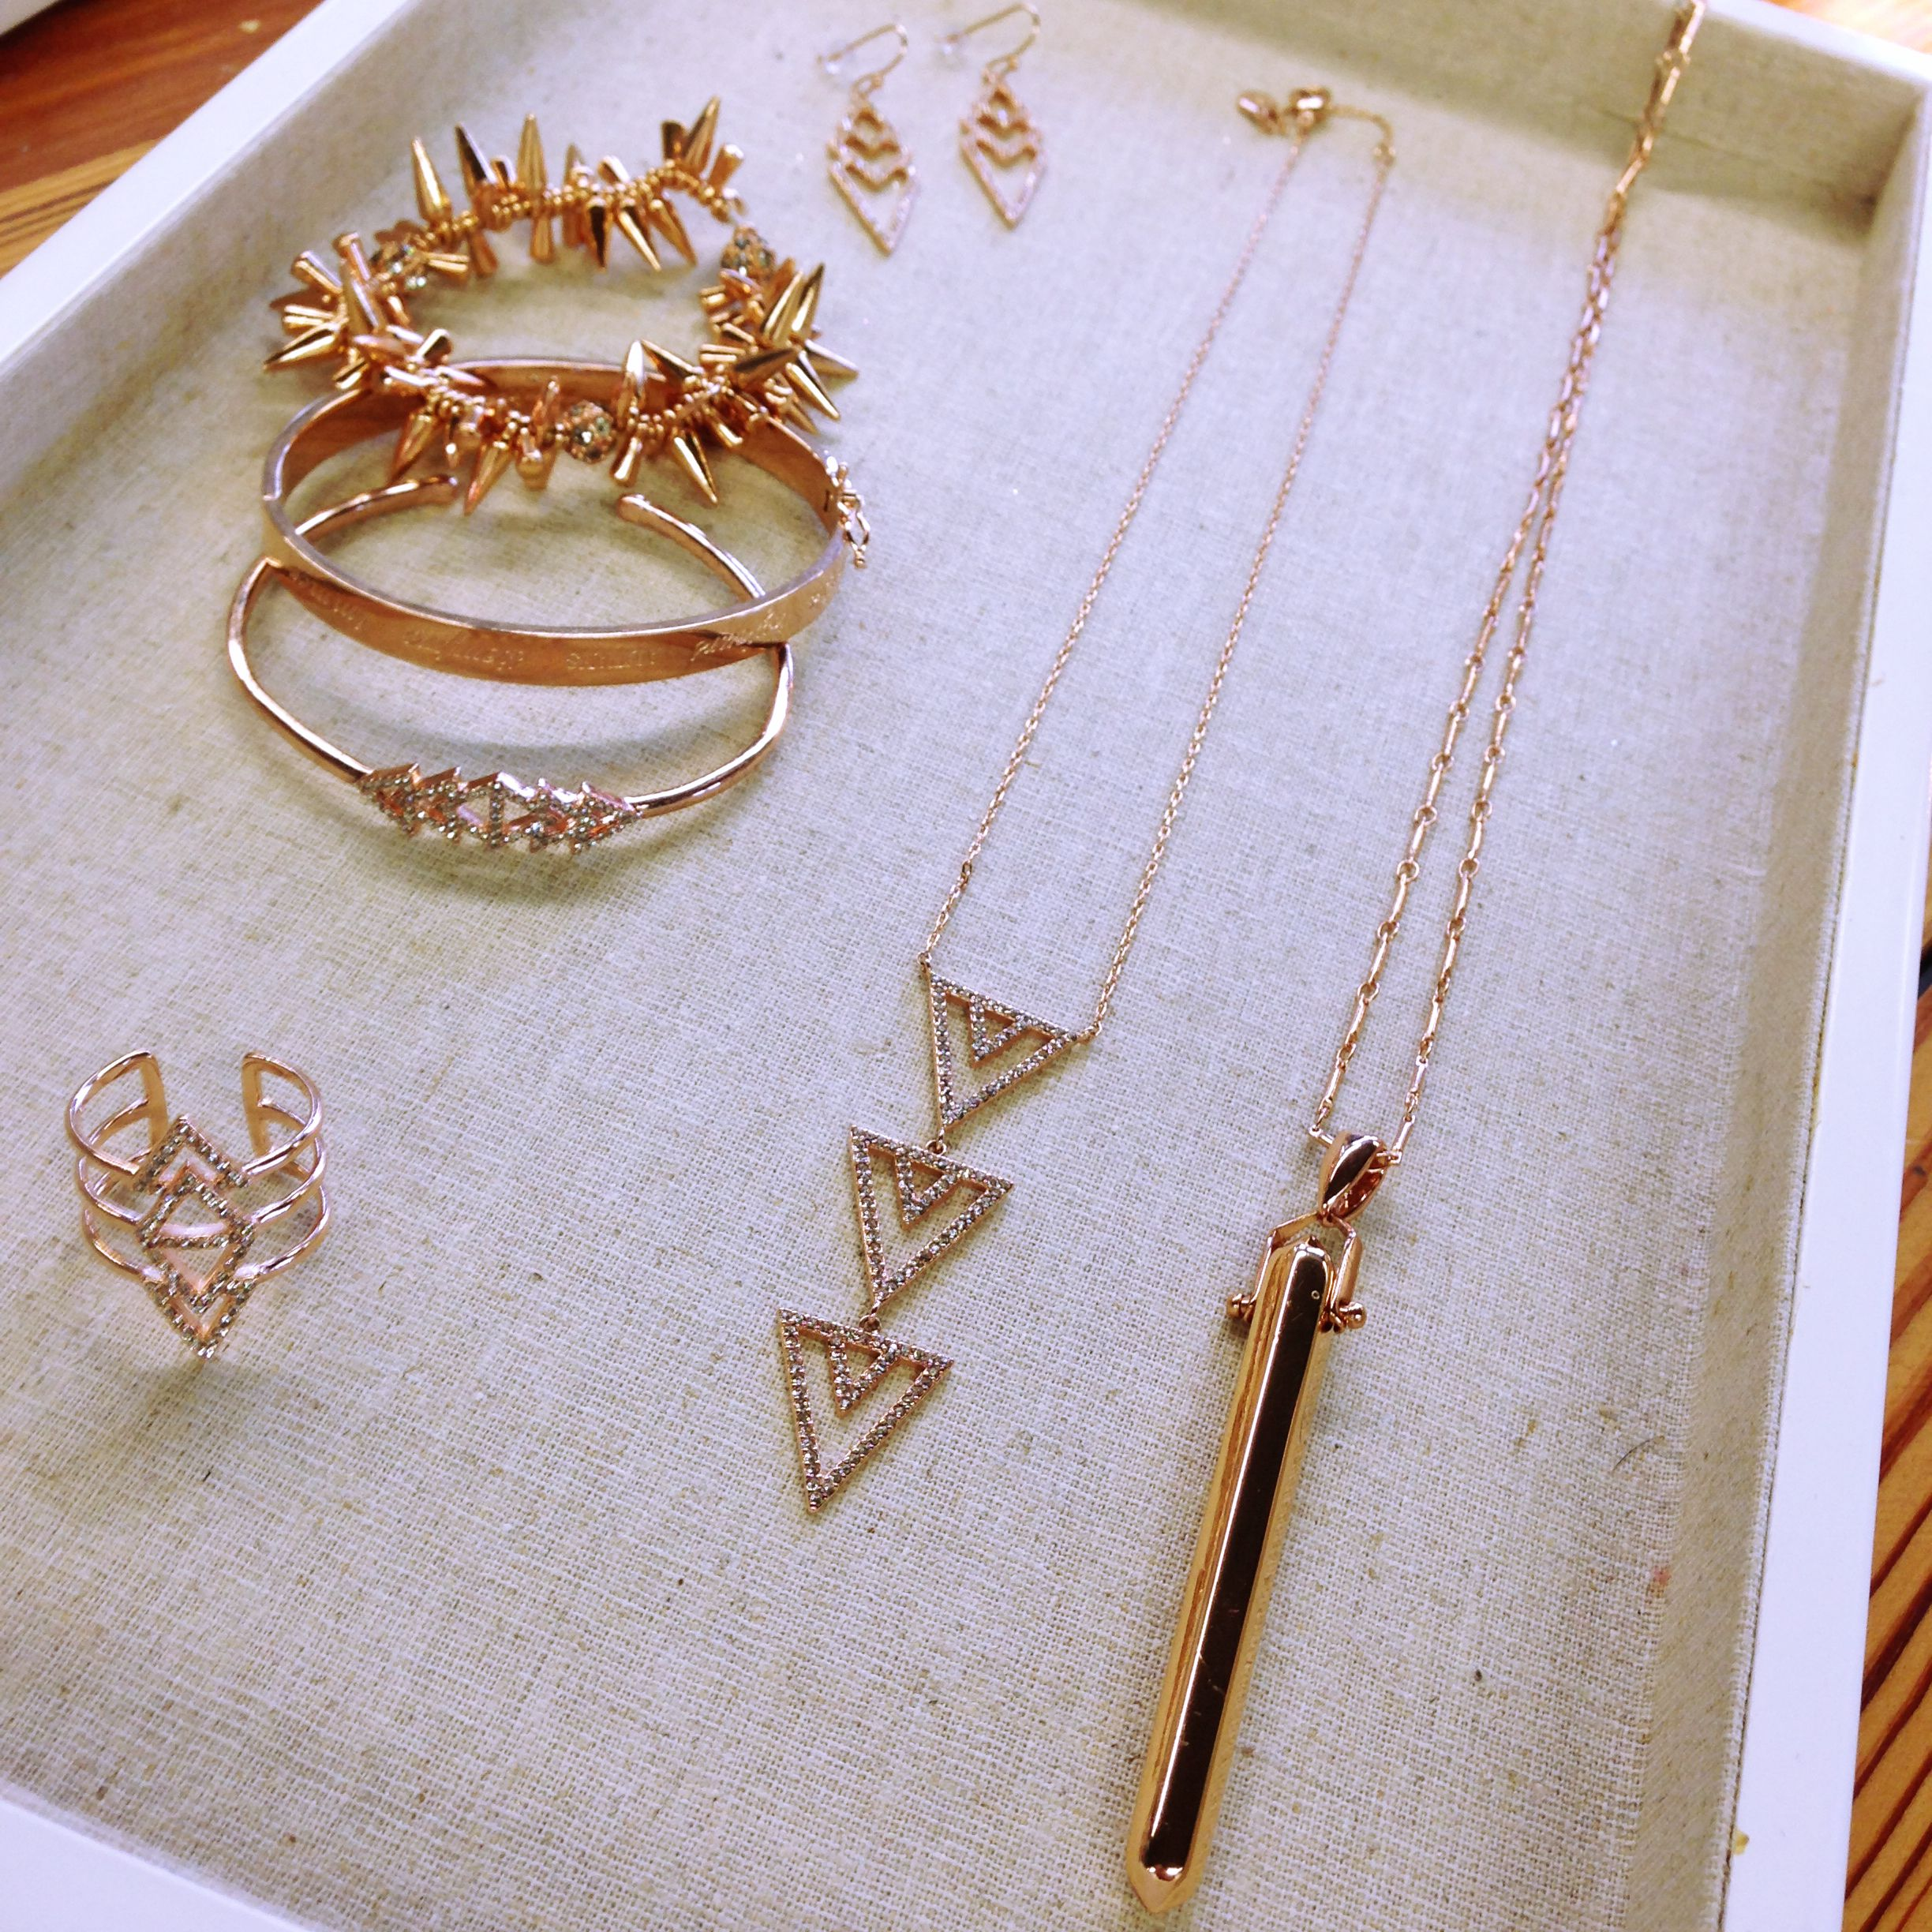 Host a trunk show jewelry party or work from home as a Stella u0026 Dot stylist! Shop our online collection of fashion jewelry costume jewelry u0026 accessories. & Rose gold everything. We canu0027t get enough | Stella u0026 Dot .www ...